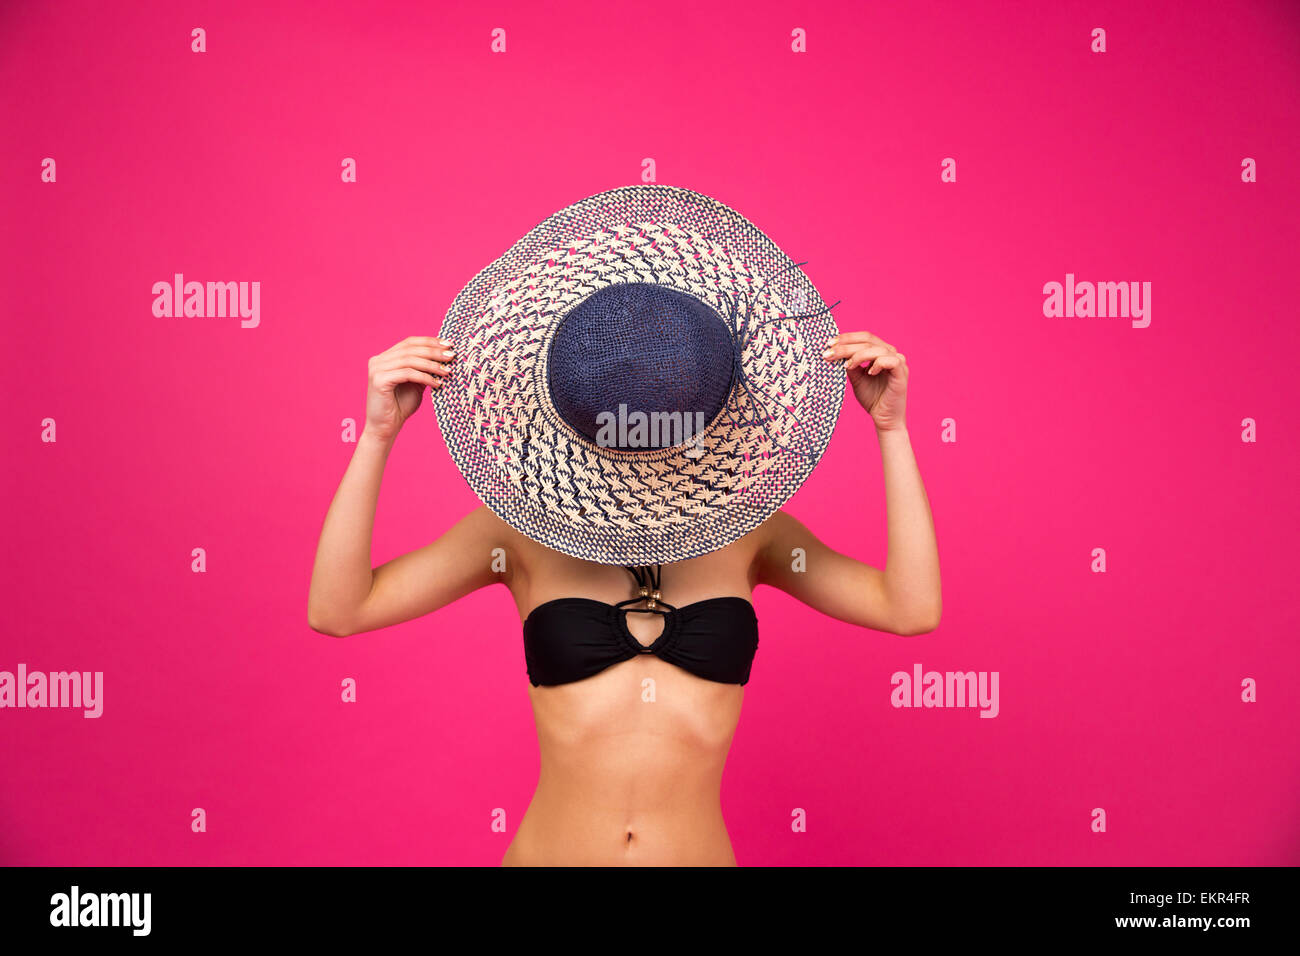 Woman in bikini covering her face with hat over pink background - Stock Image